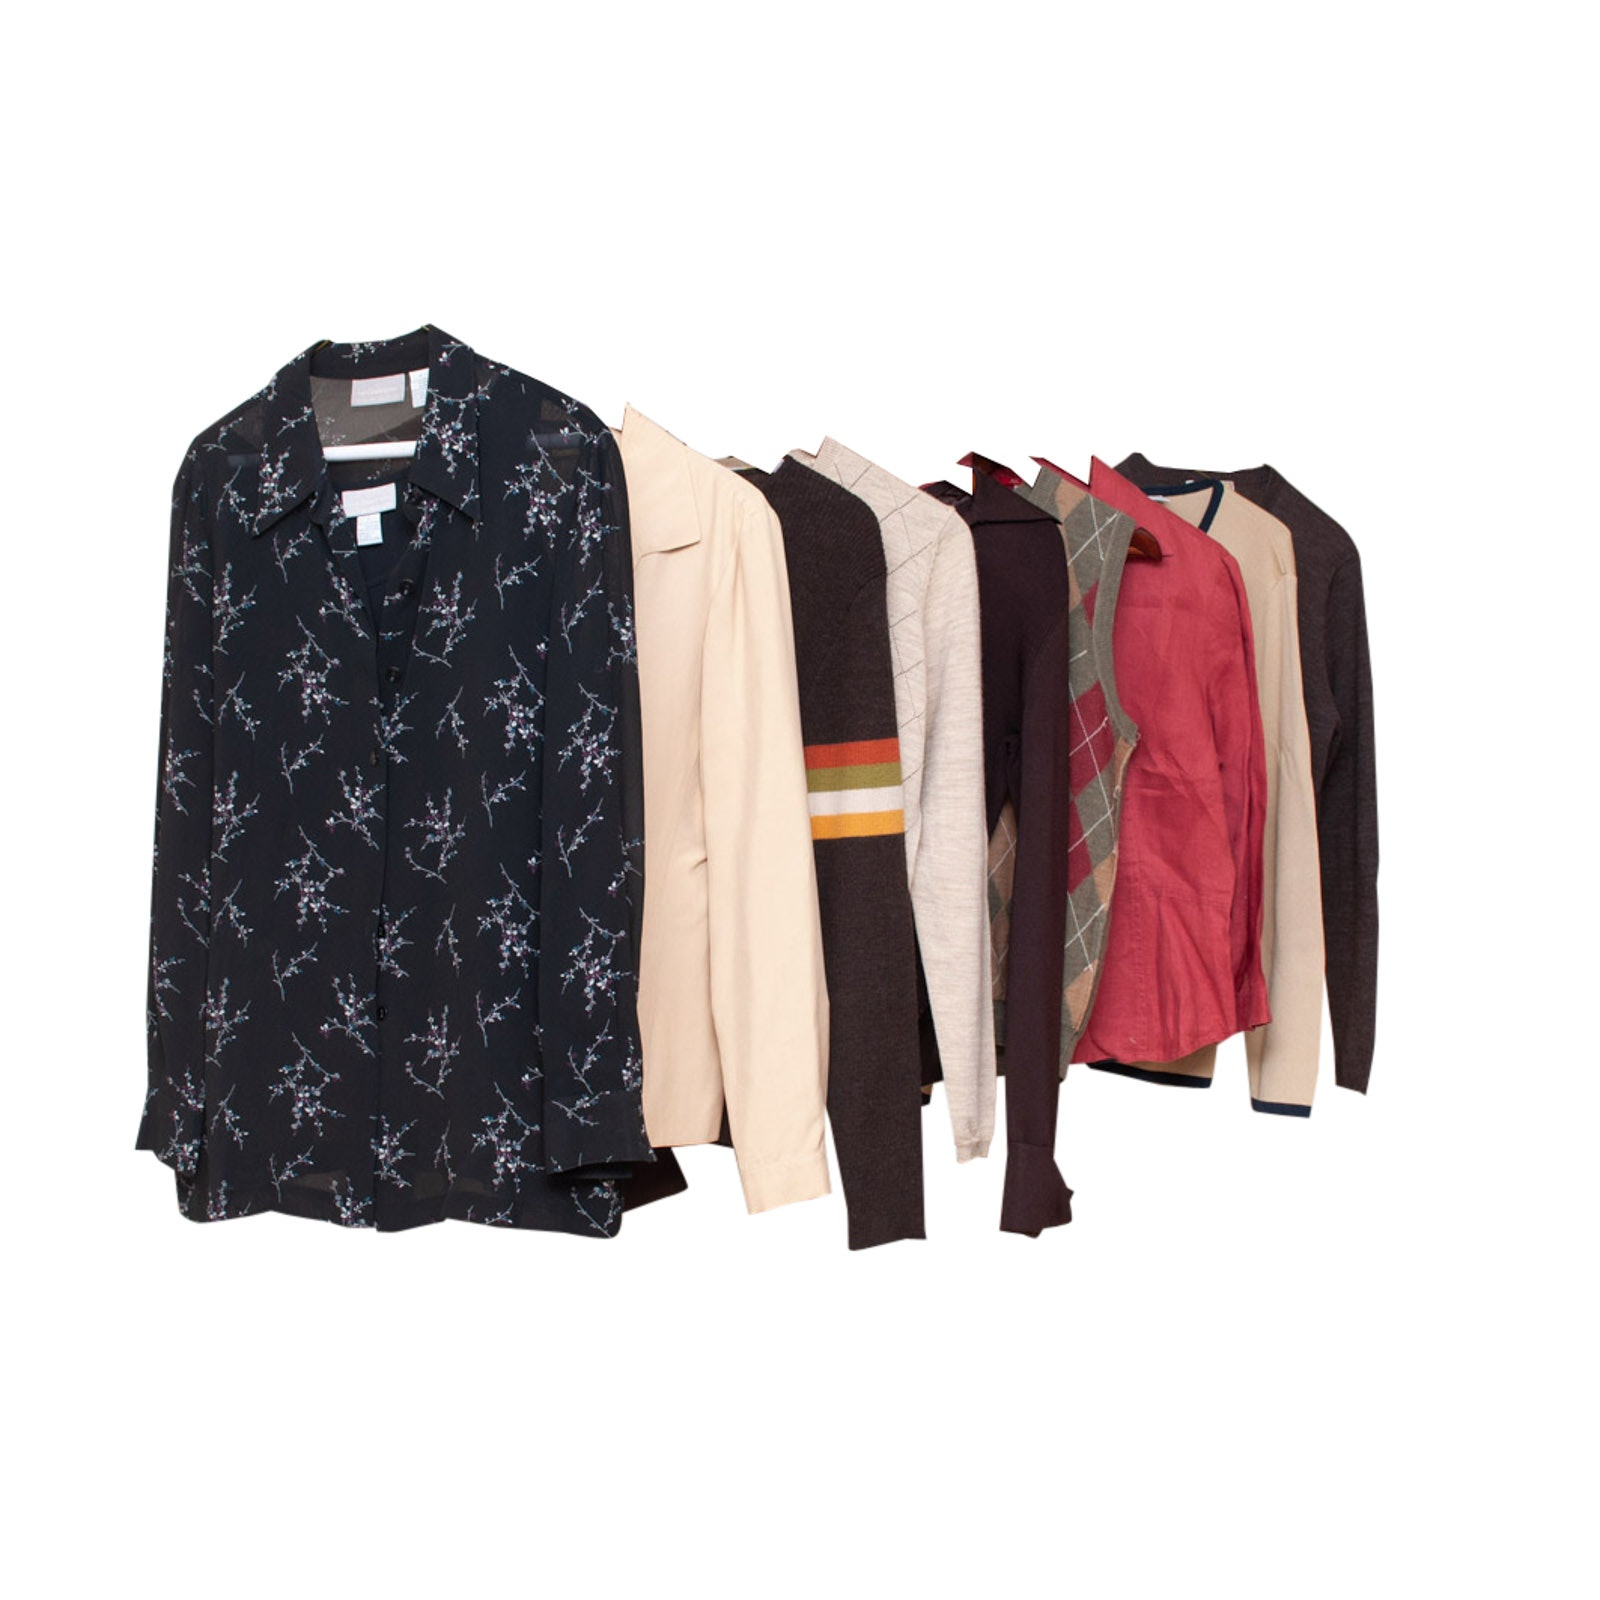 Women's Sweaters and Shirts Including Brooks Brothers and Ann Talor Loft